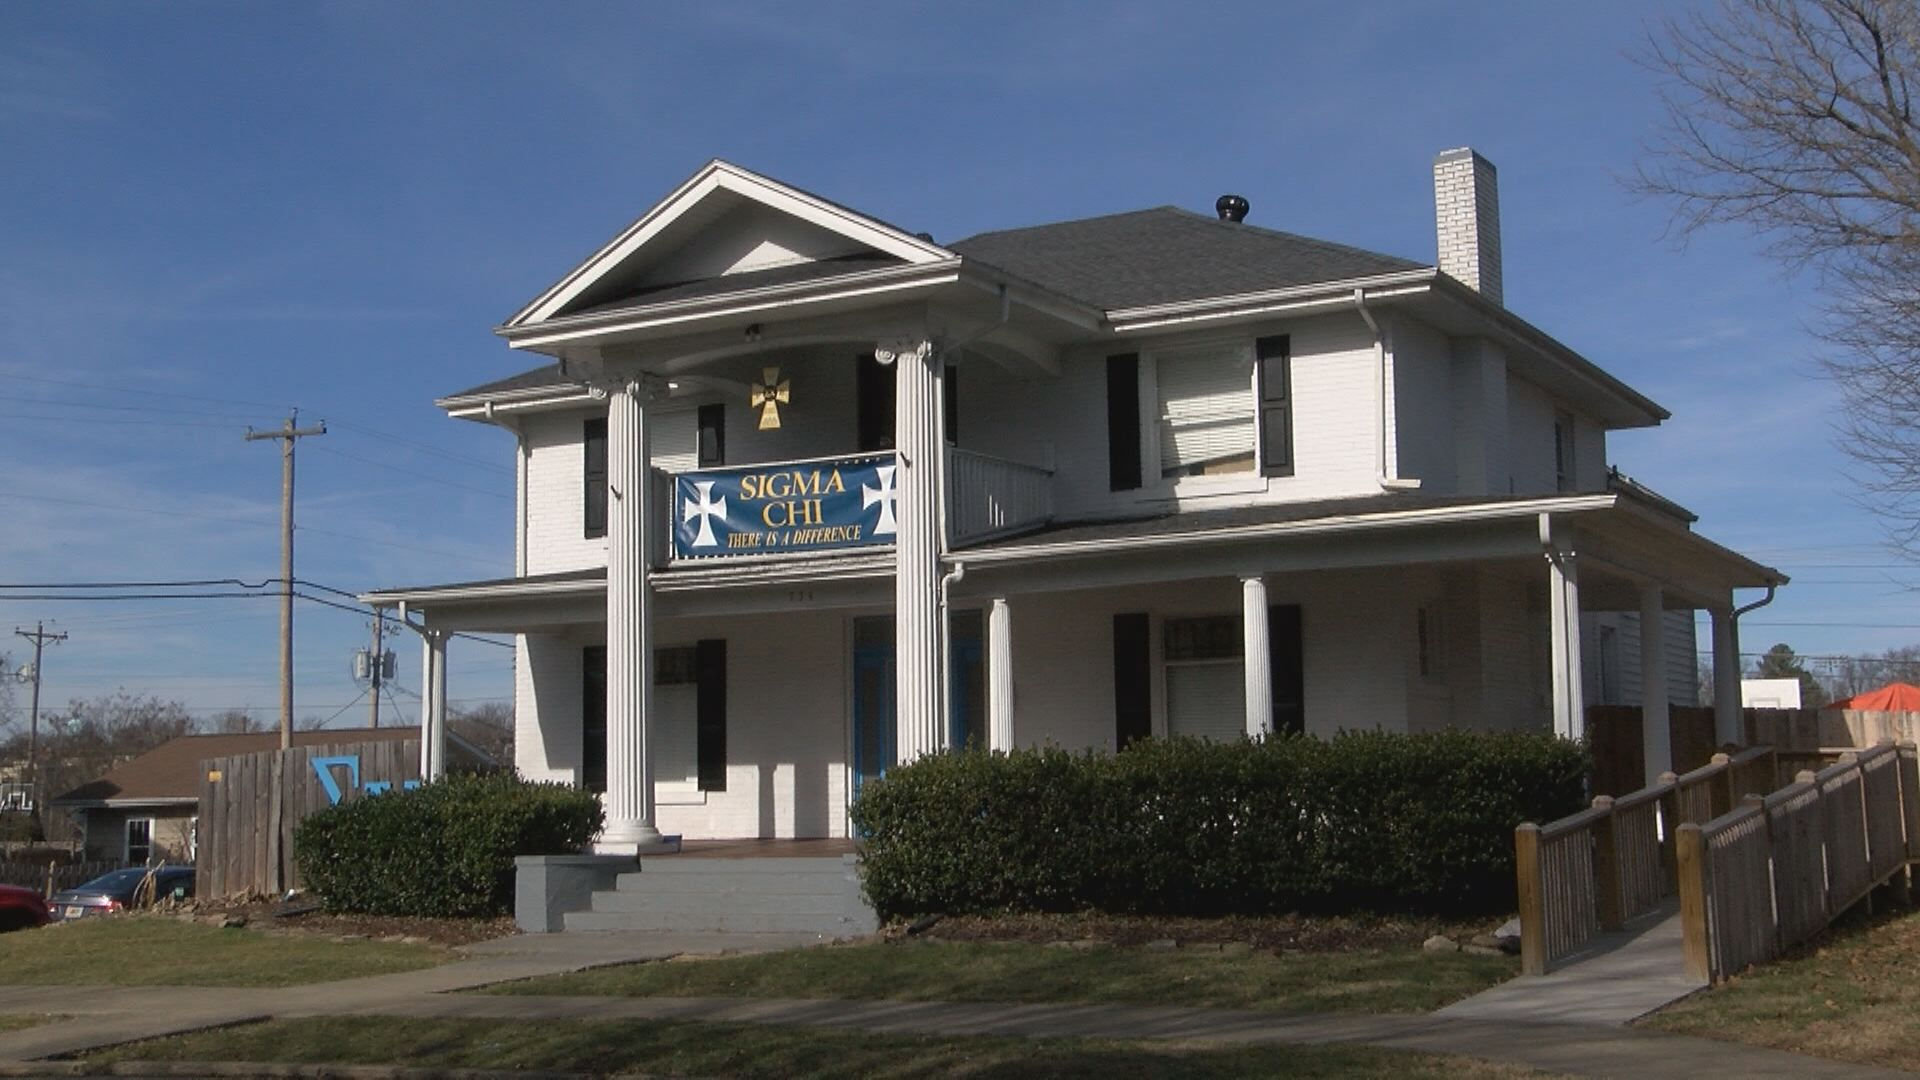 The Sigma Chi house sits in a historic district of Johnson City, one of the few fraternity houses remaining there. (Thomas Gray/WCYB)